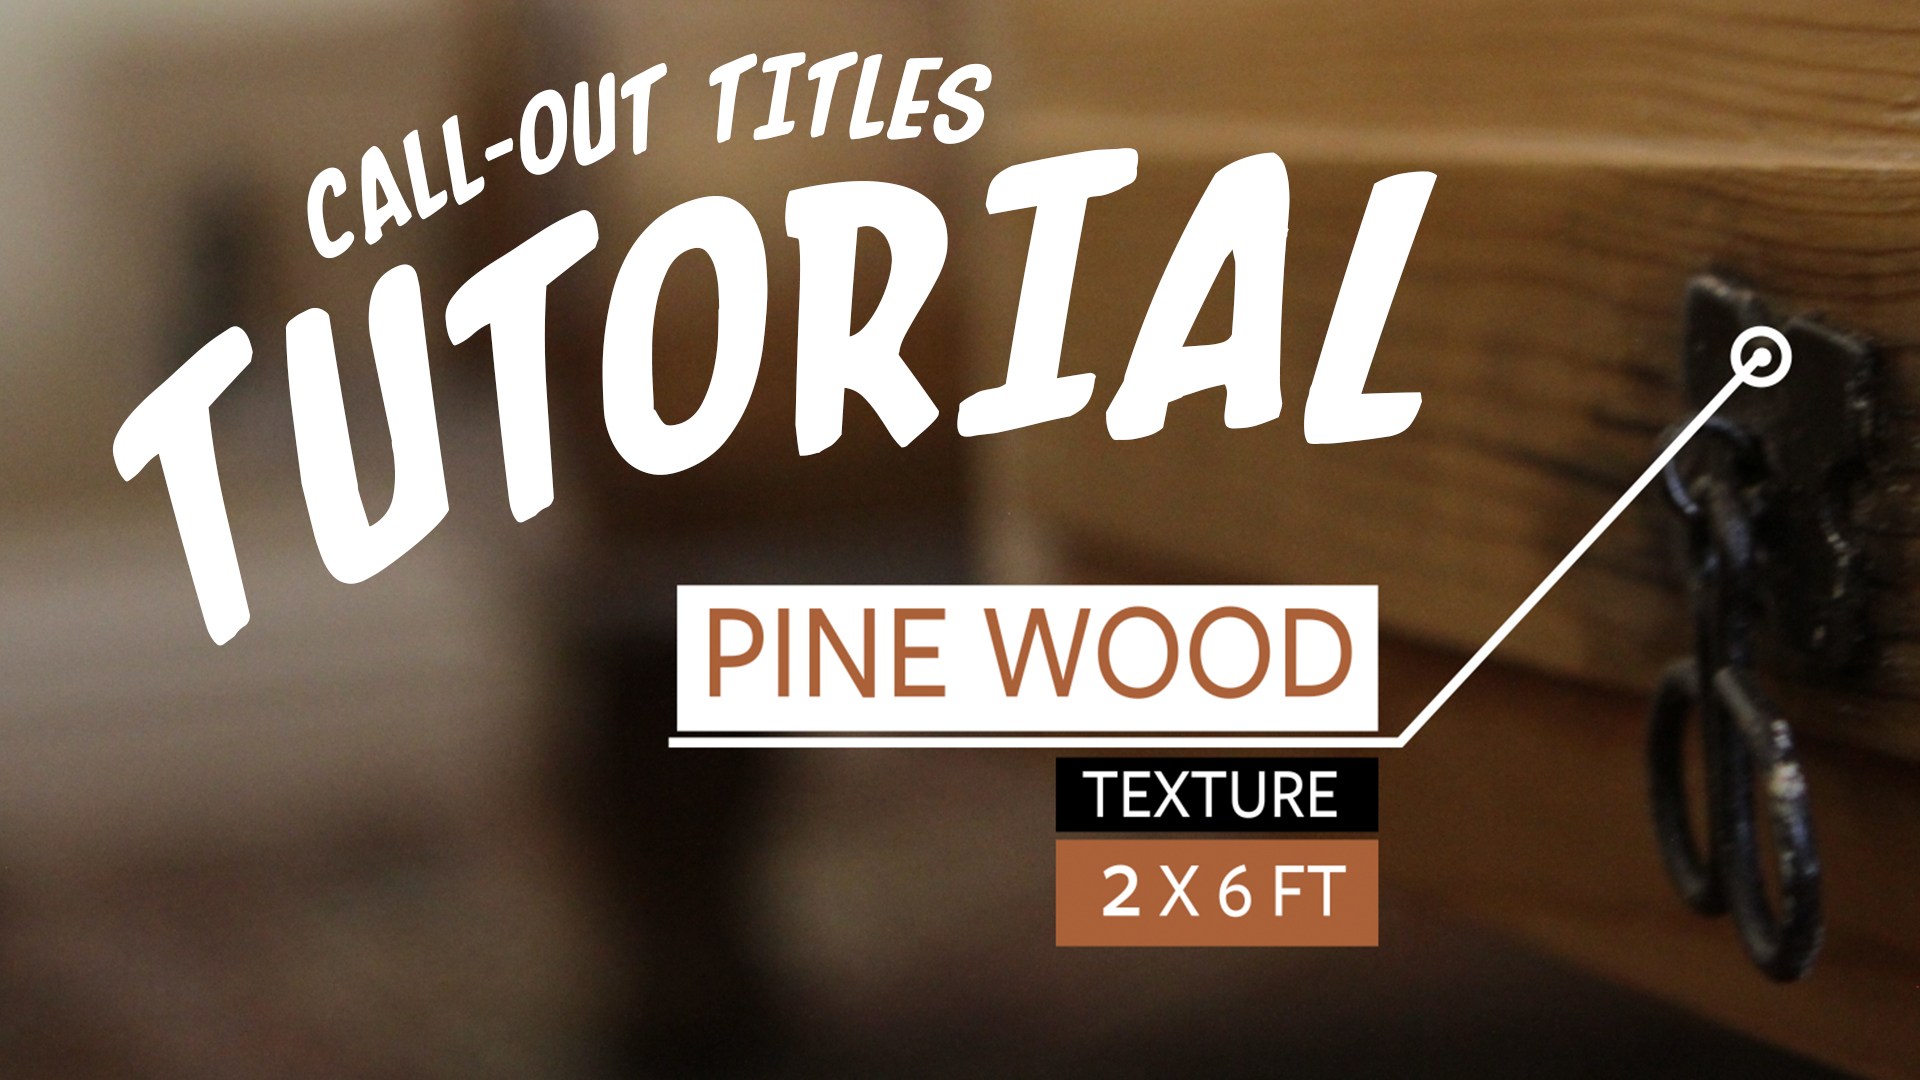 CallOut Titles After Effects Tutorial And Free Template - Purchase after effects templates